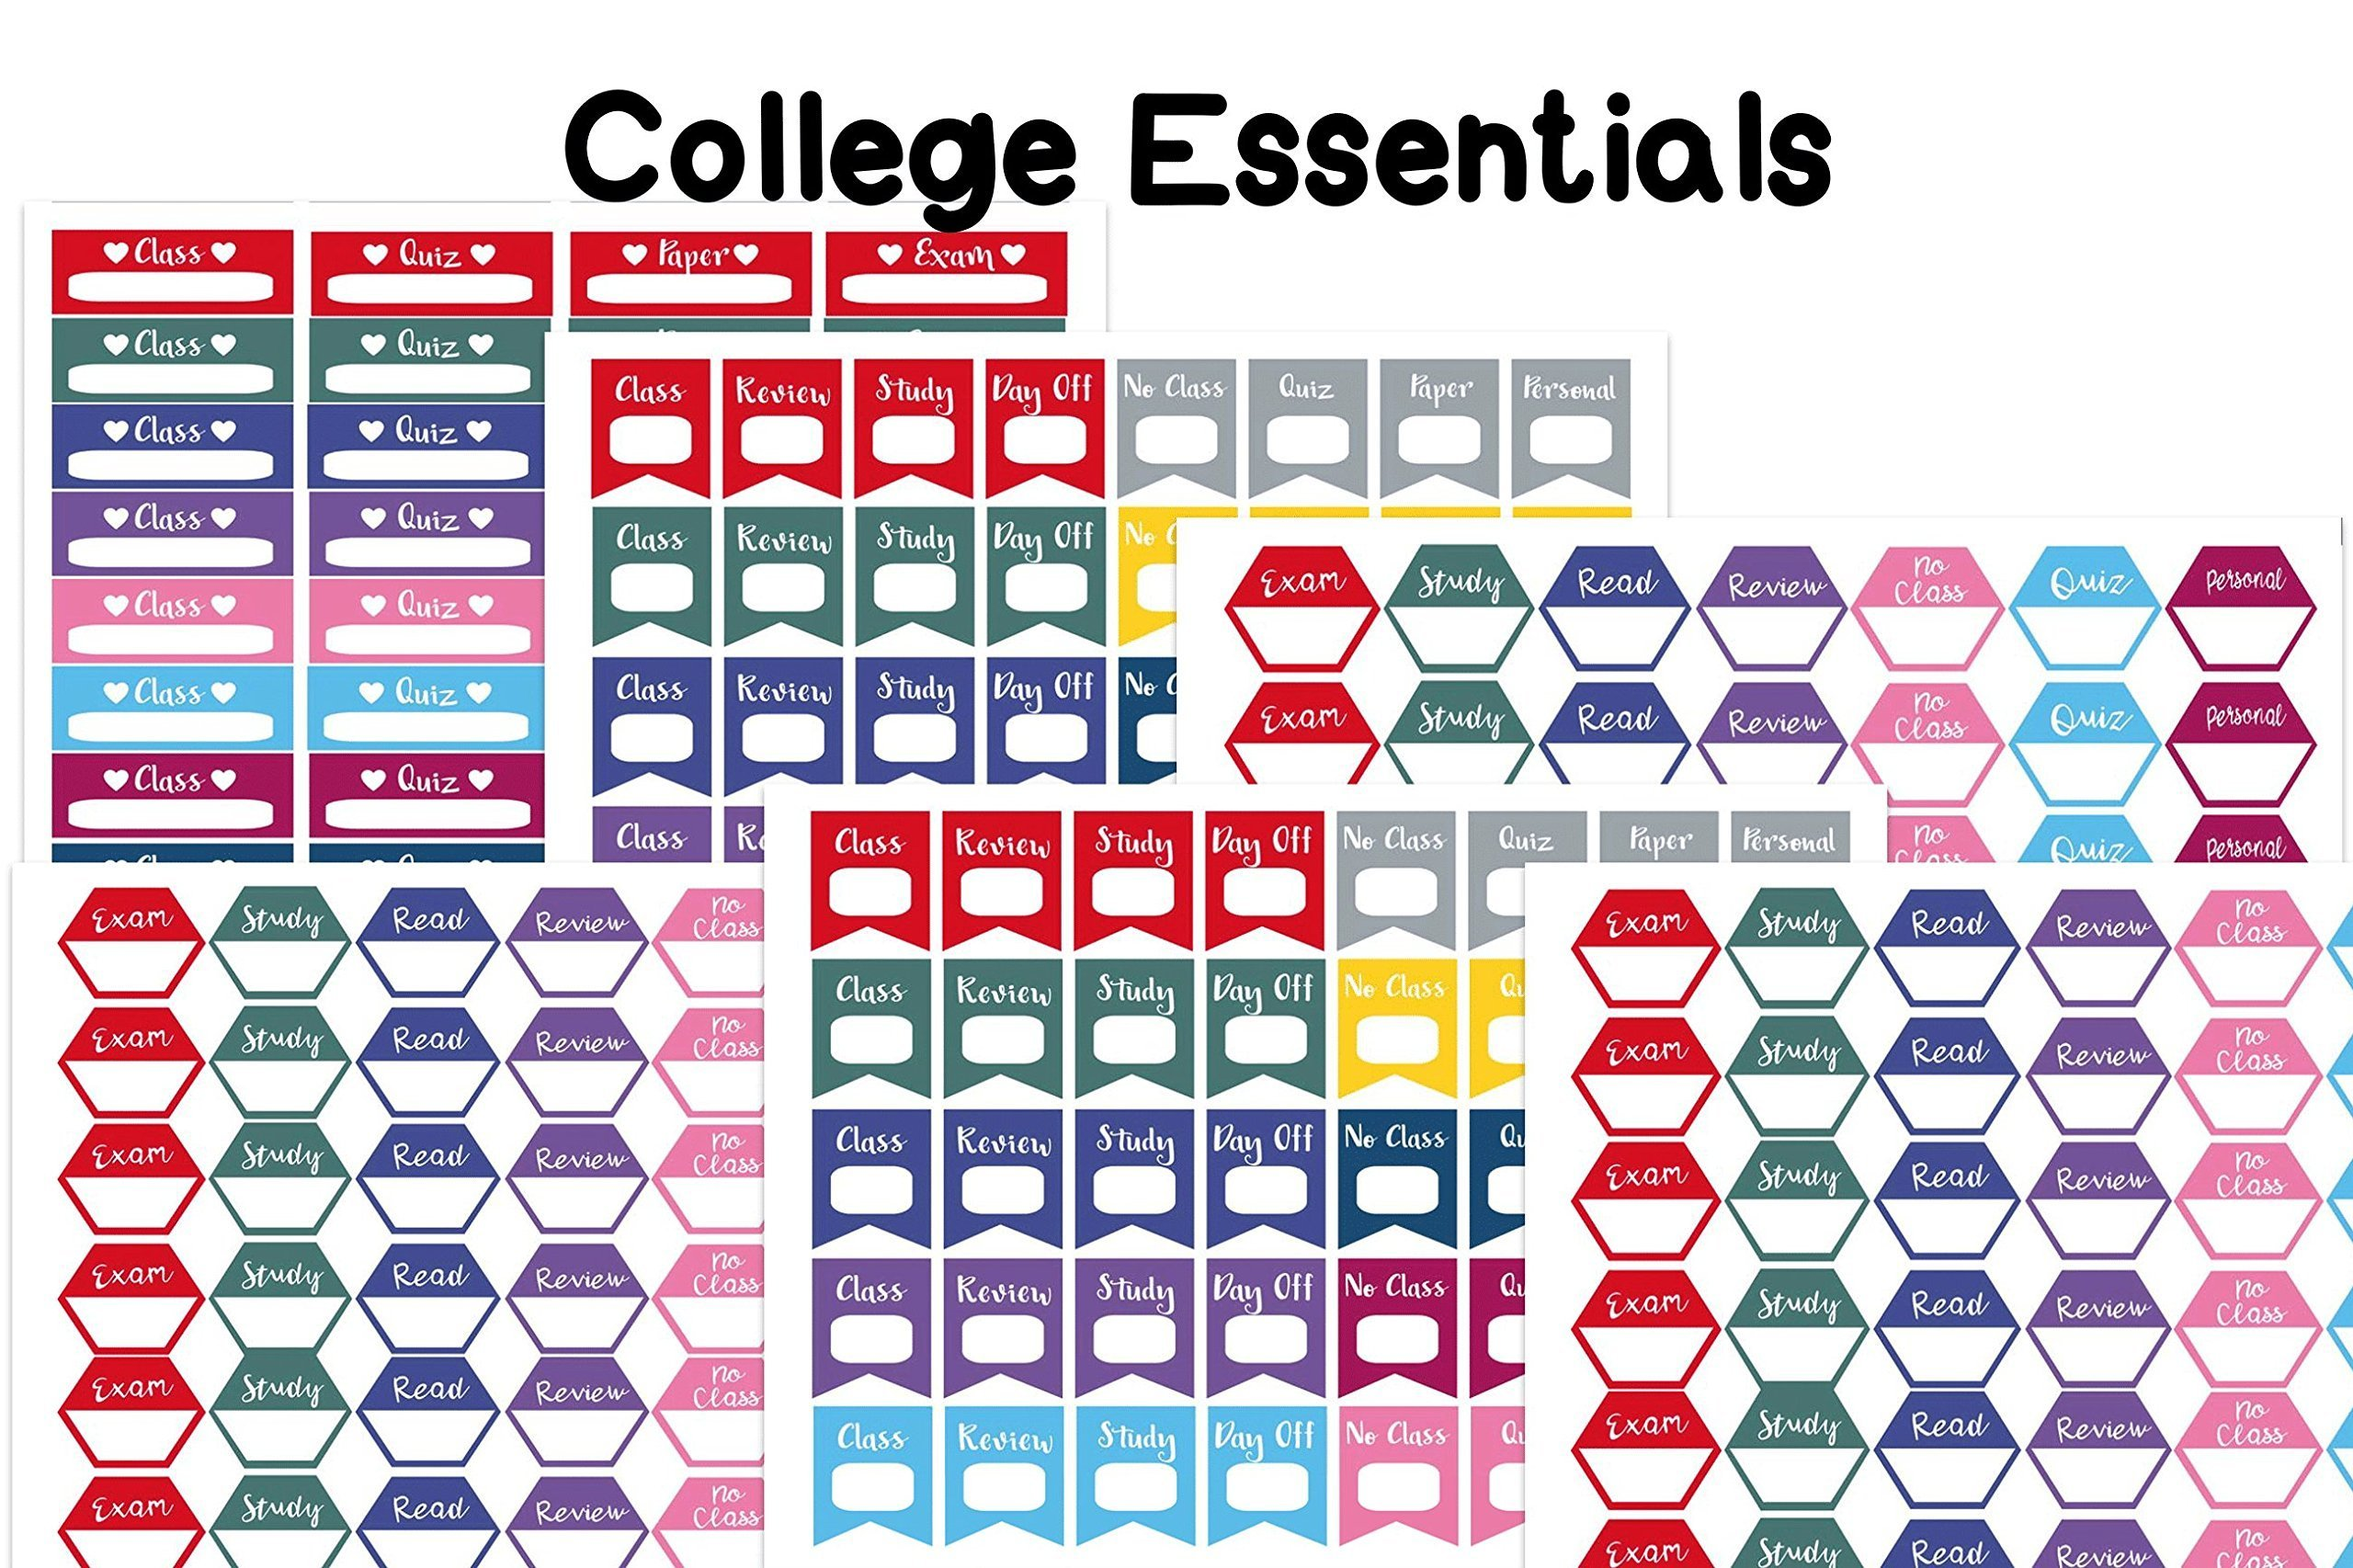 College Essential planner/organizer stickers. 6 sheets on matte sticker paper. Sized to fit most planners.